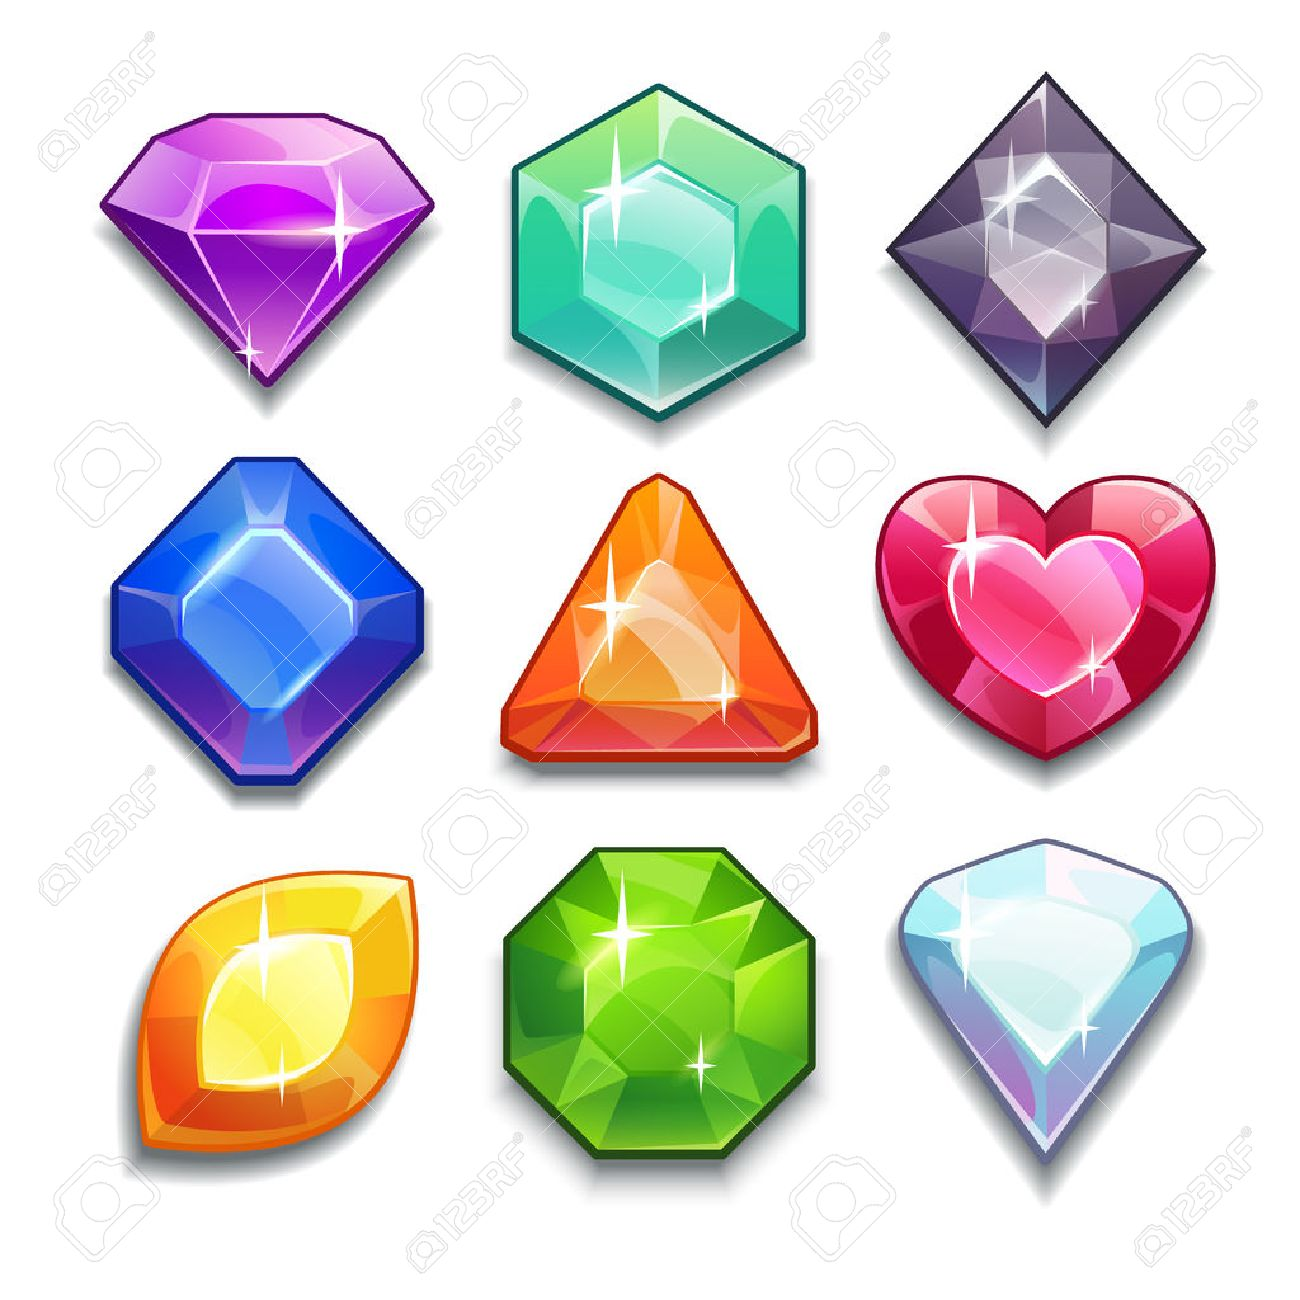 Cartoon vector gems and diamonds icons set in different colors with different shapes, isolated on the white background. - 38671613